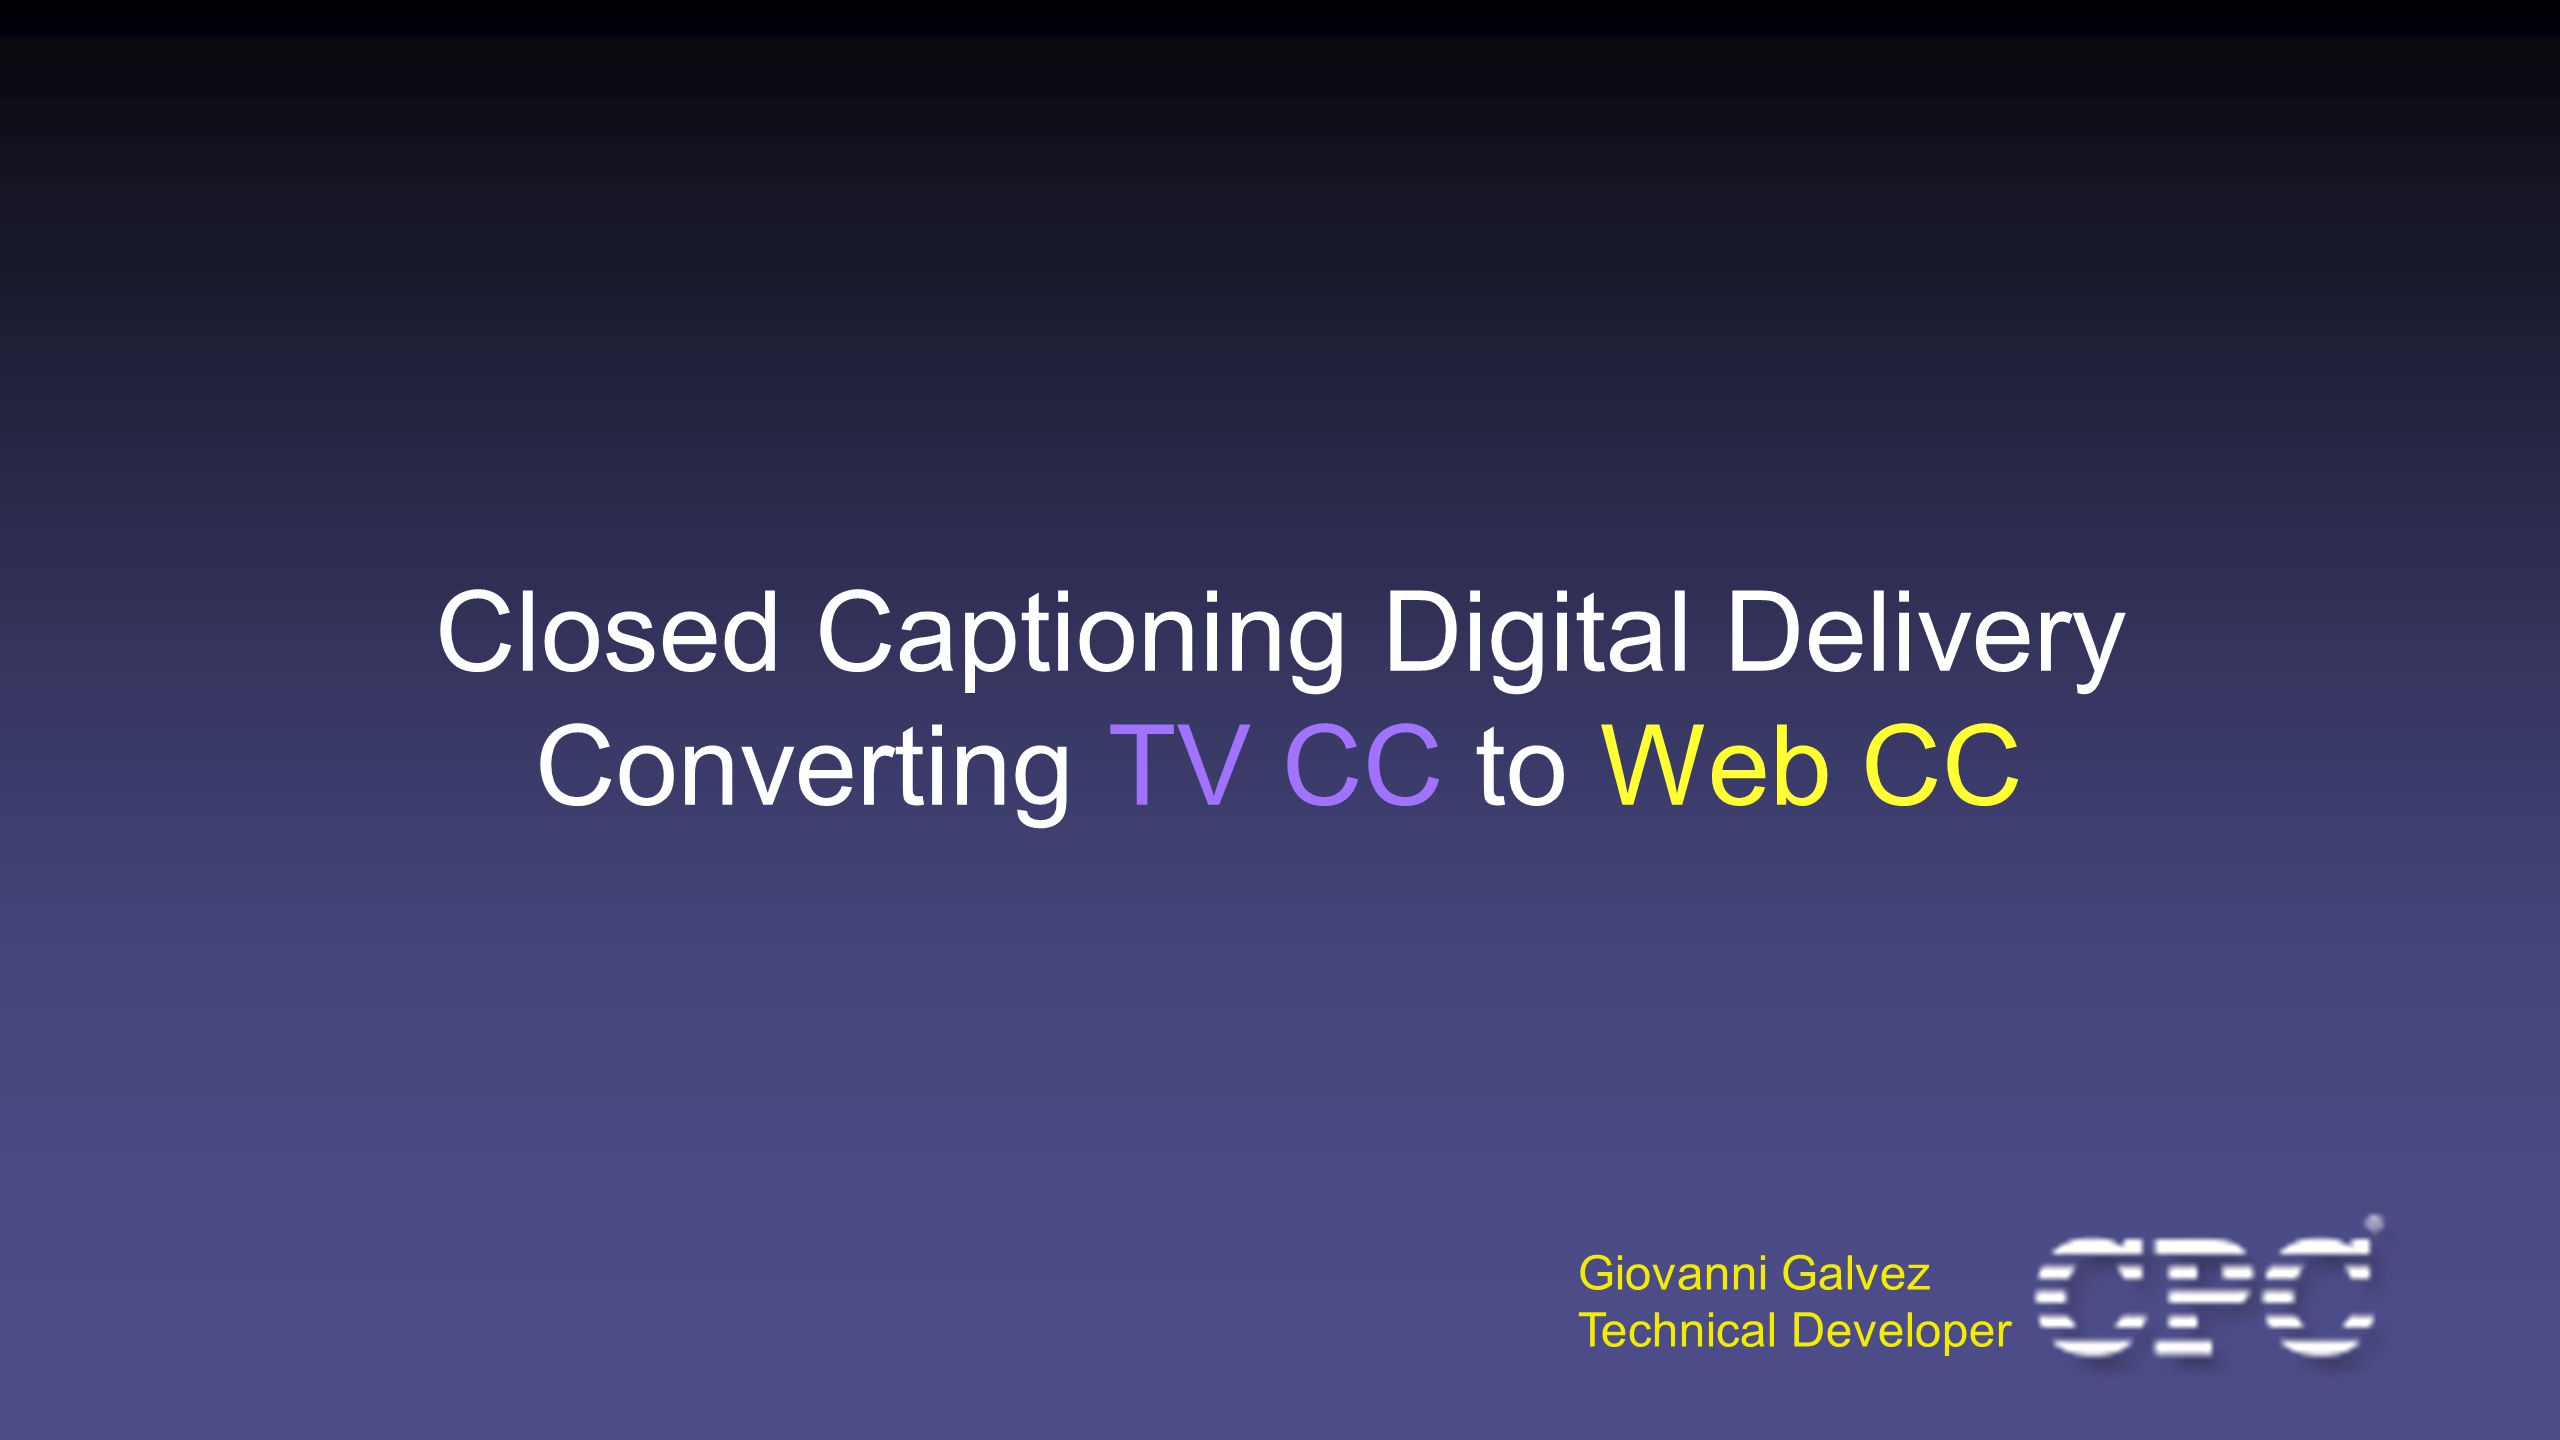 Closed Captioning Digital Delivery Converting TV CC to Web CC Giovanni Galvez Technical Developer